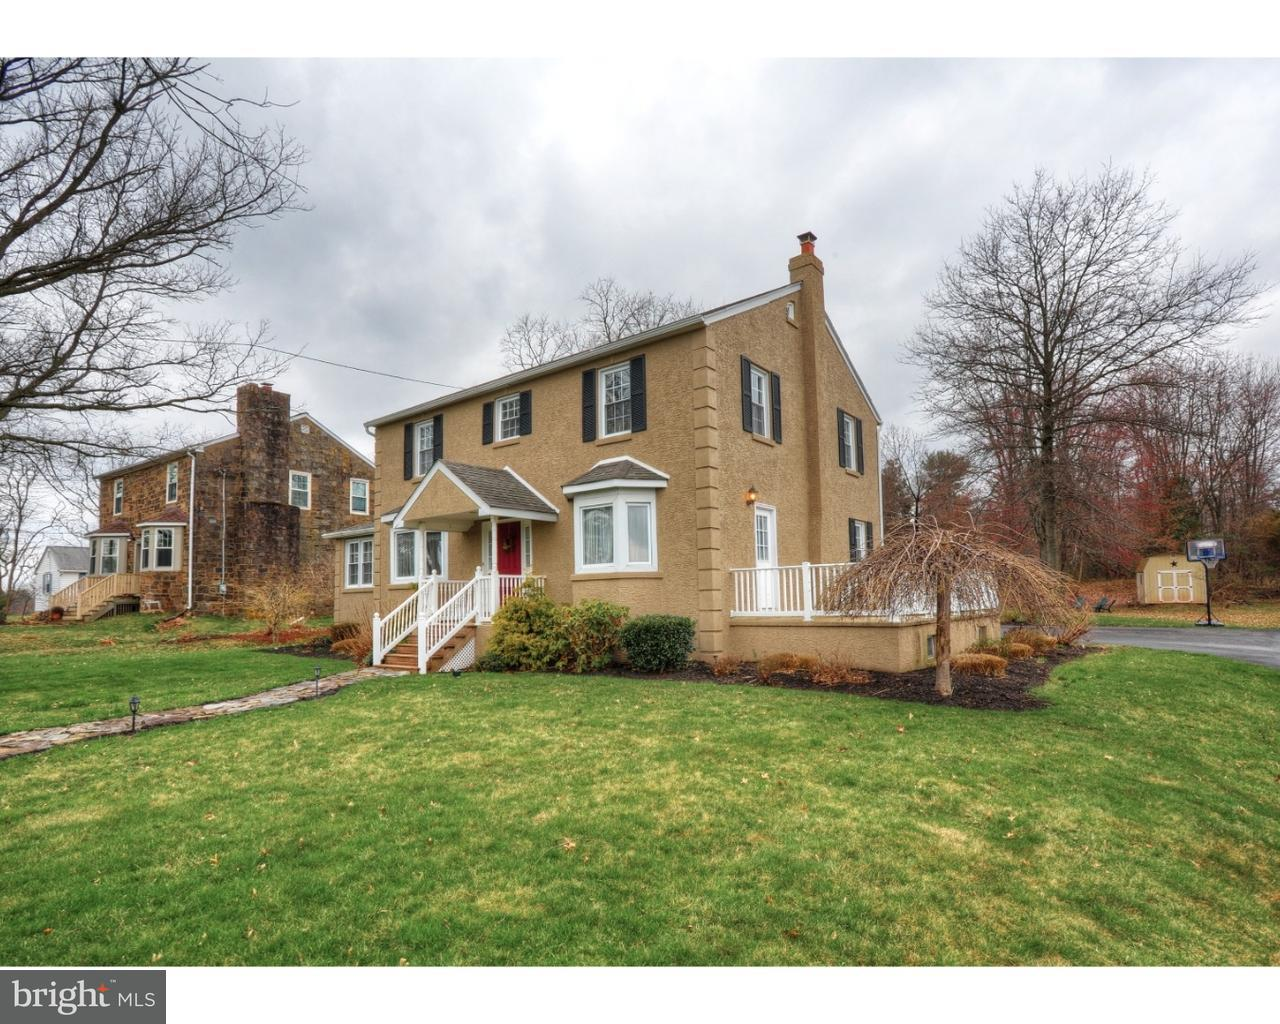 69 W 5TH AVE, TRAPPE - Listed at $399,000, TRAPPE